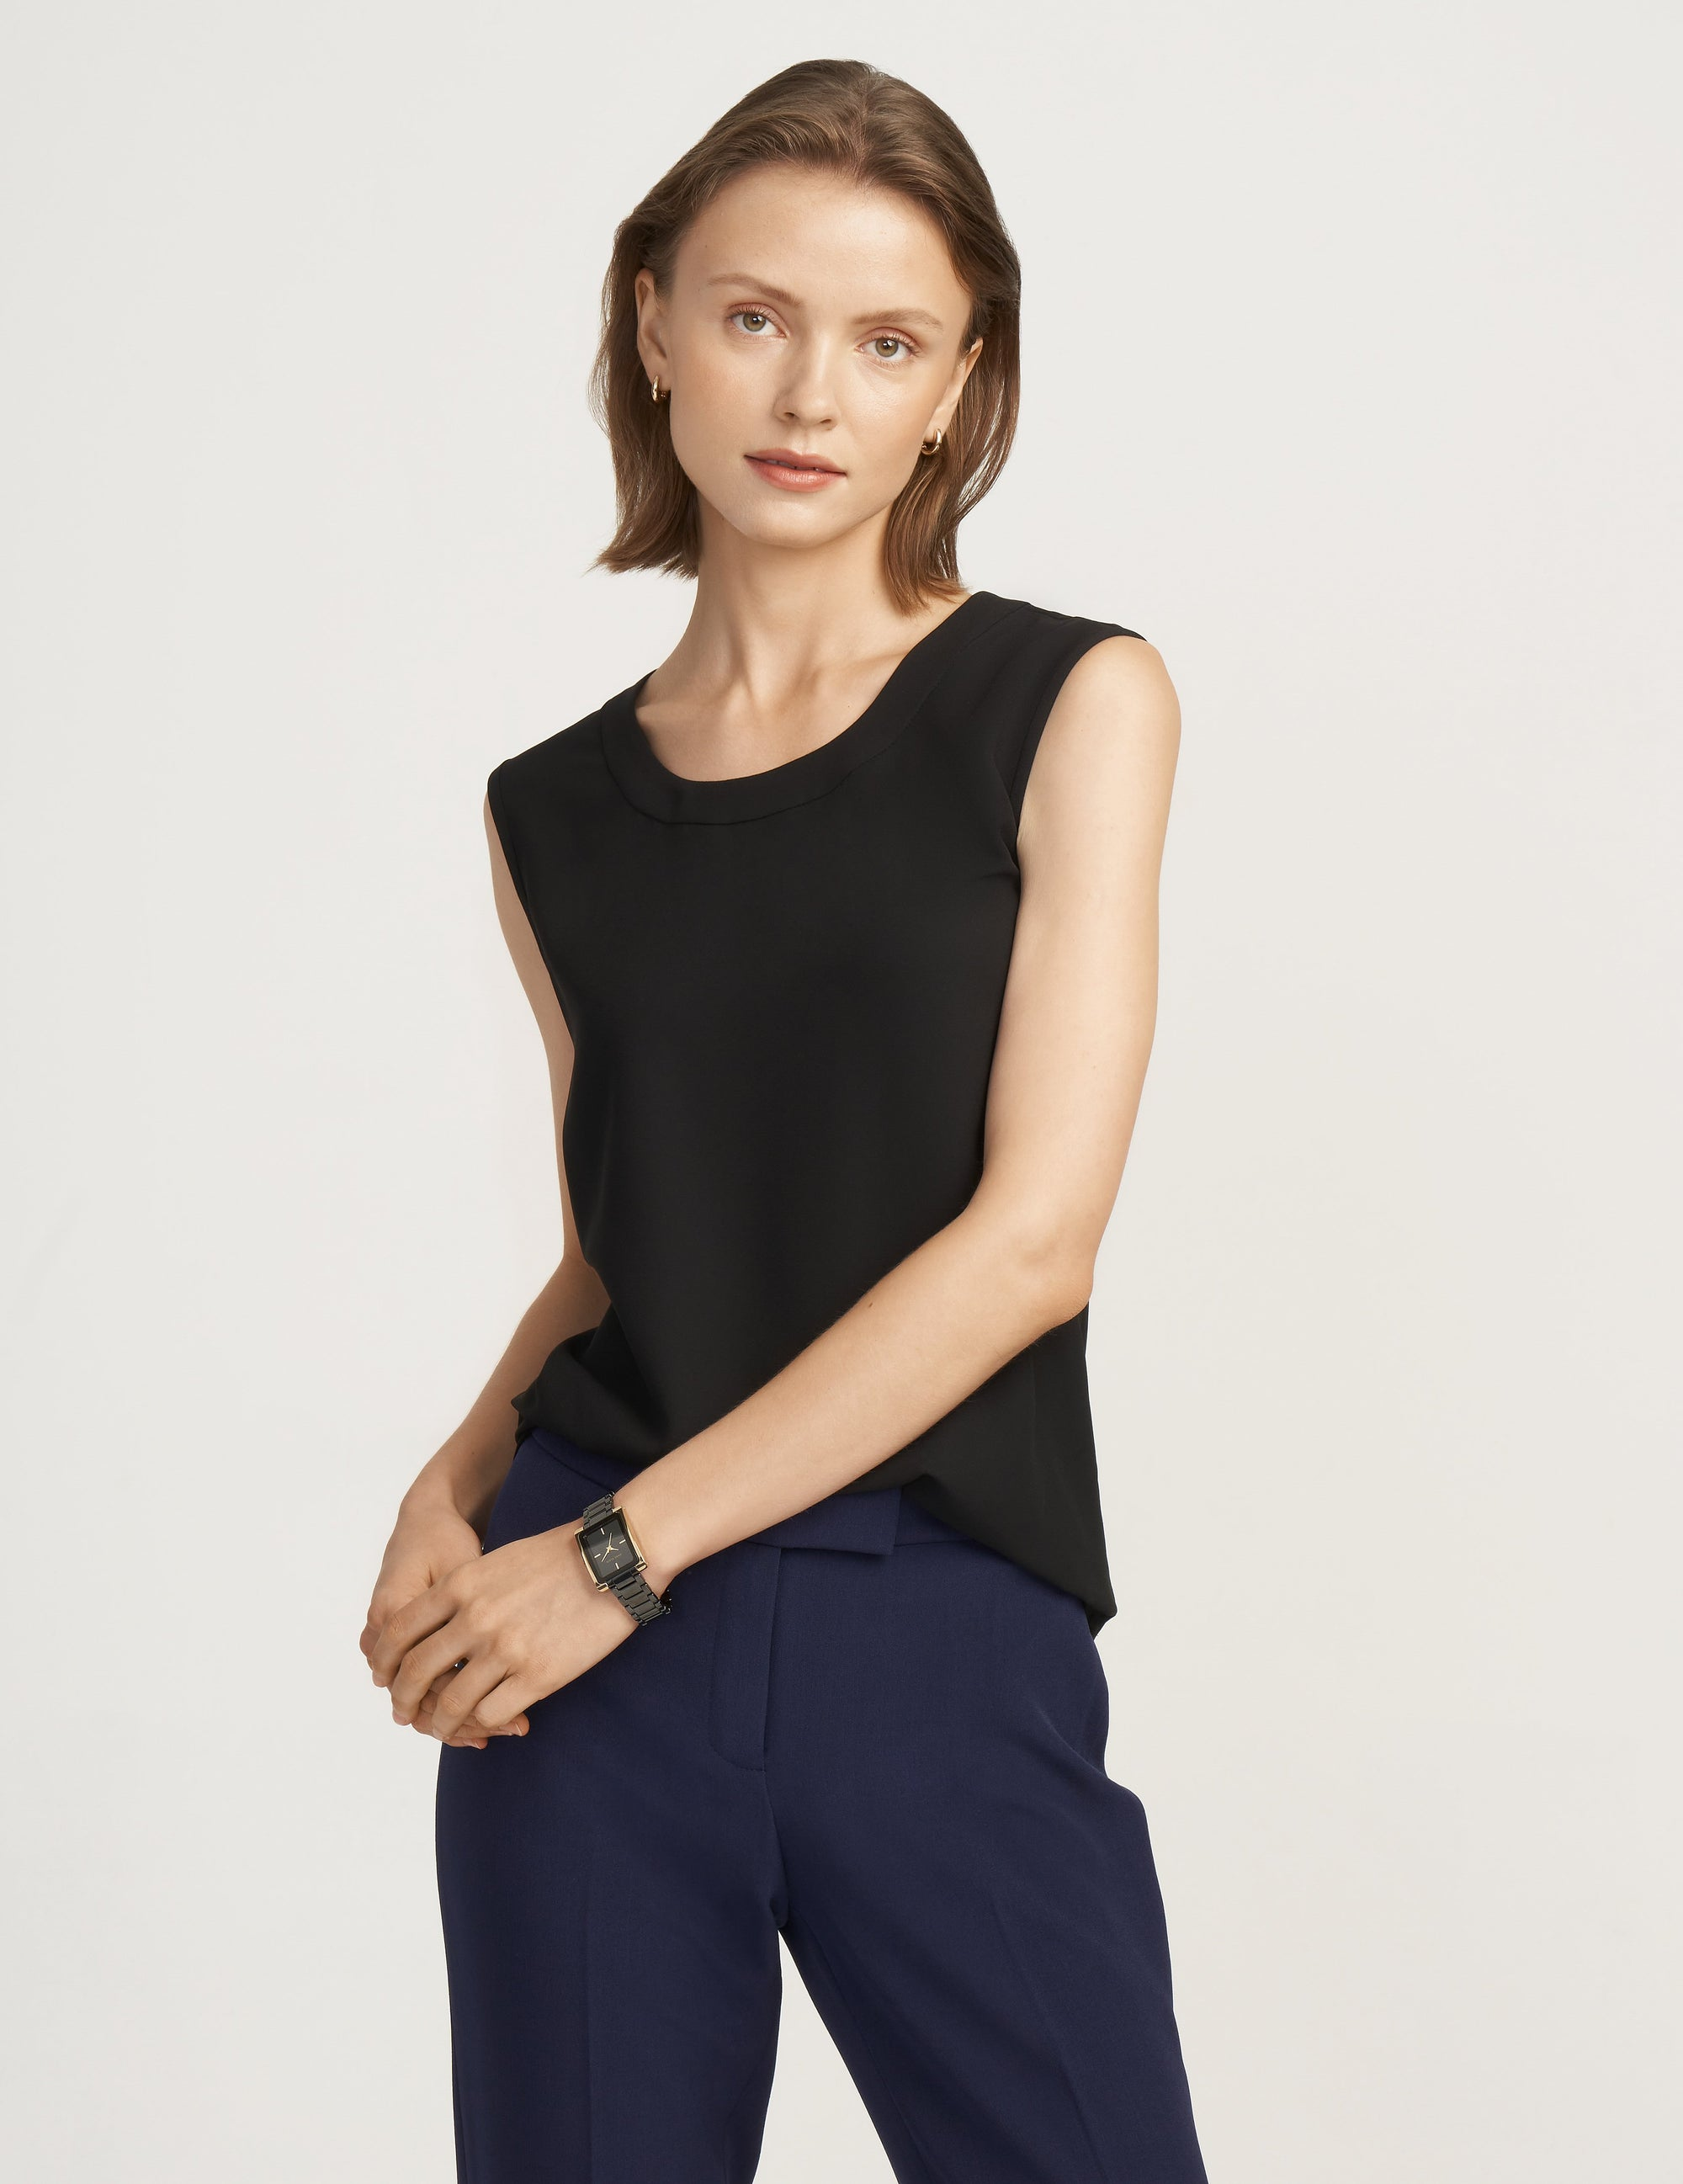 Anne Klein Black U-Neck Sleeveless Blouse